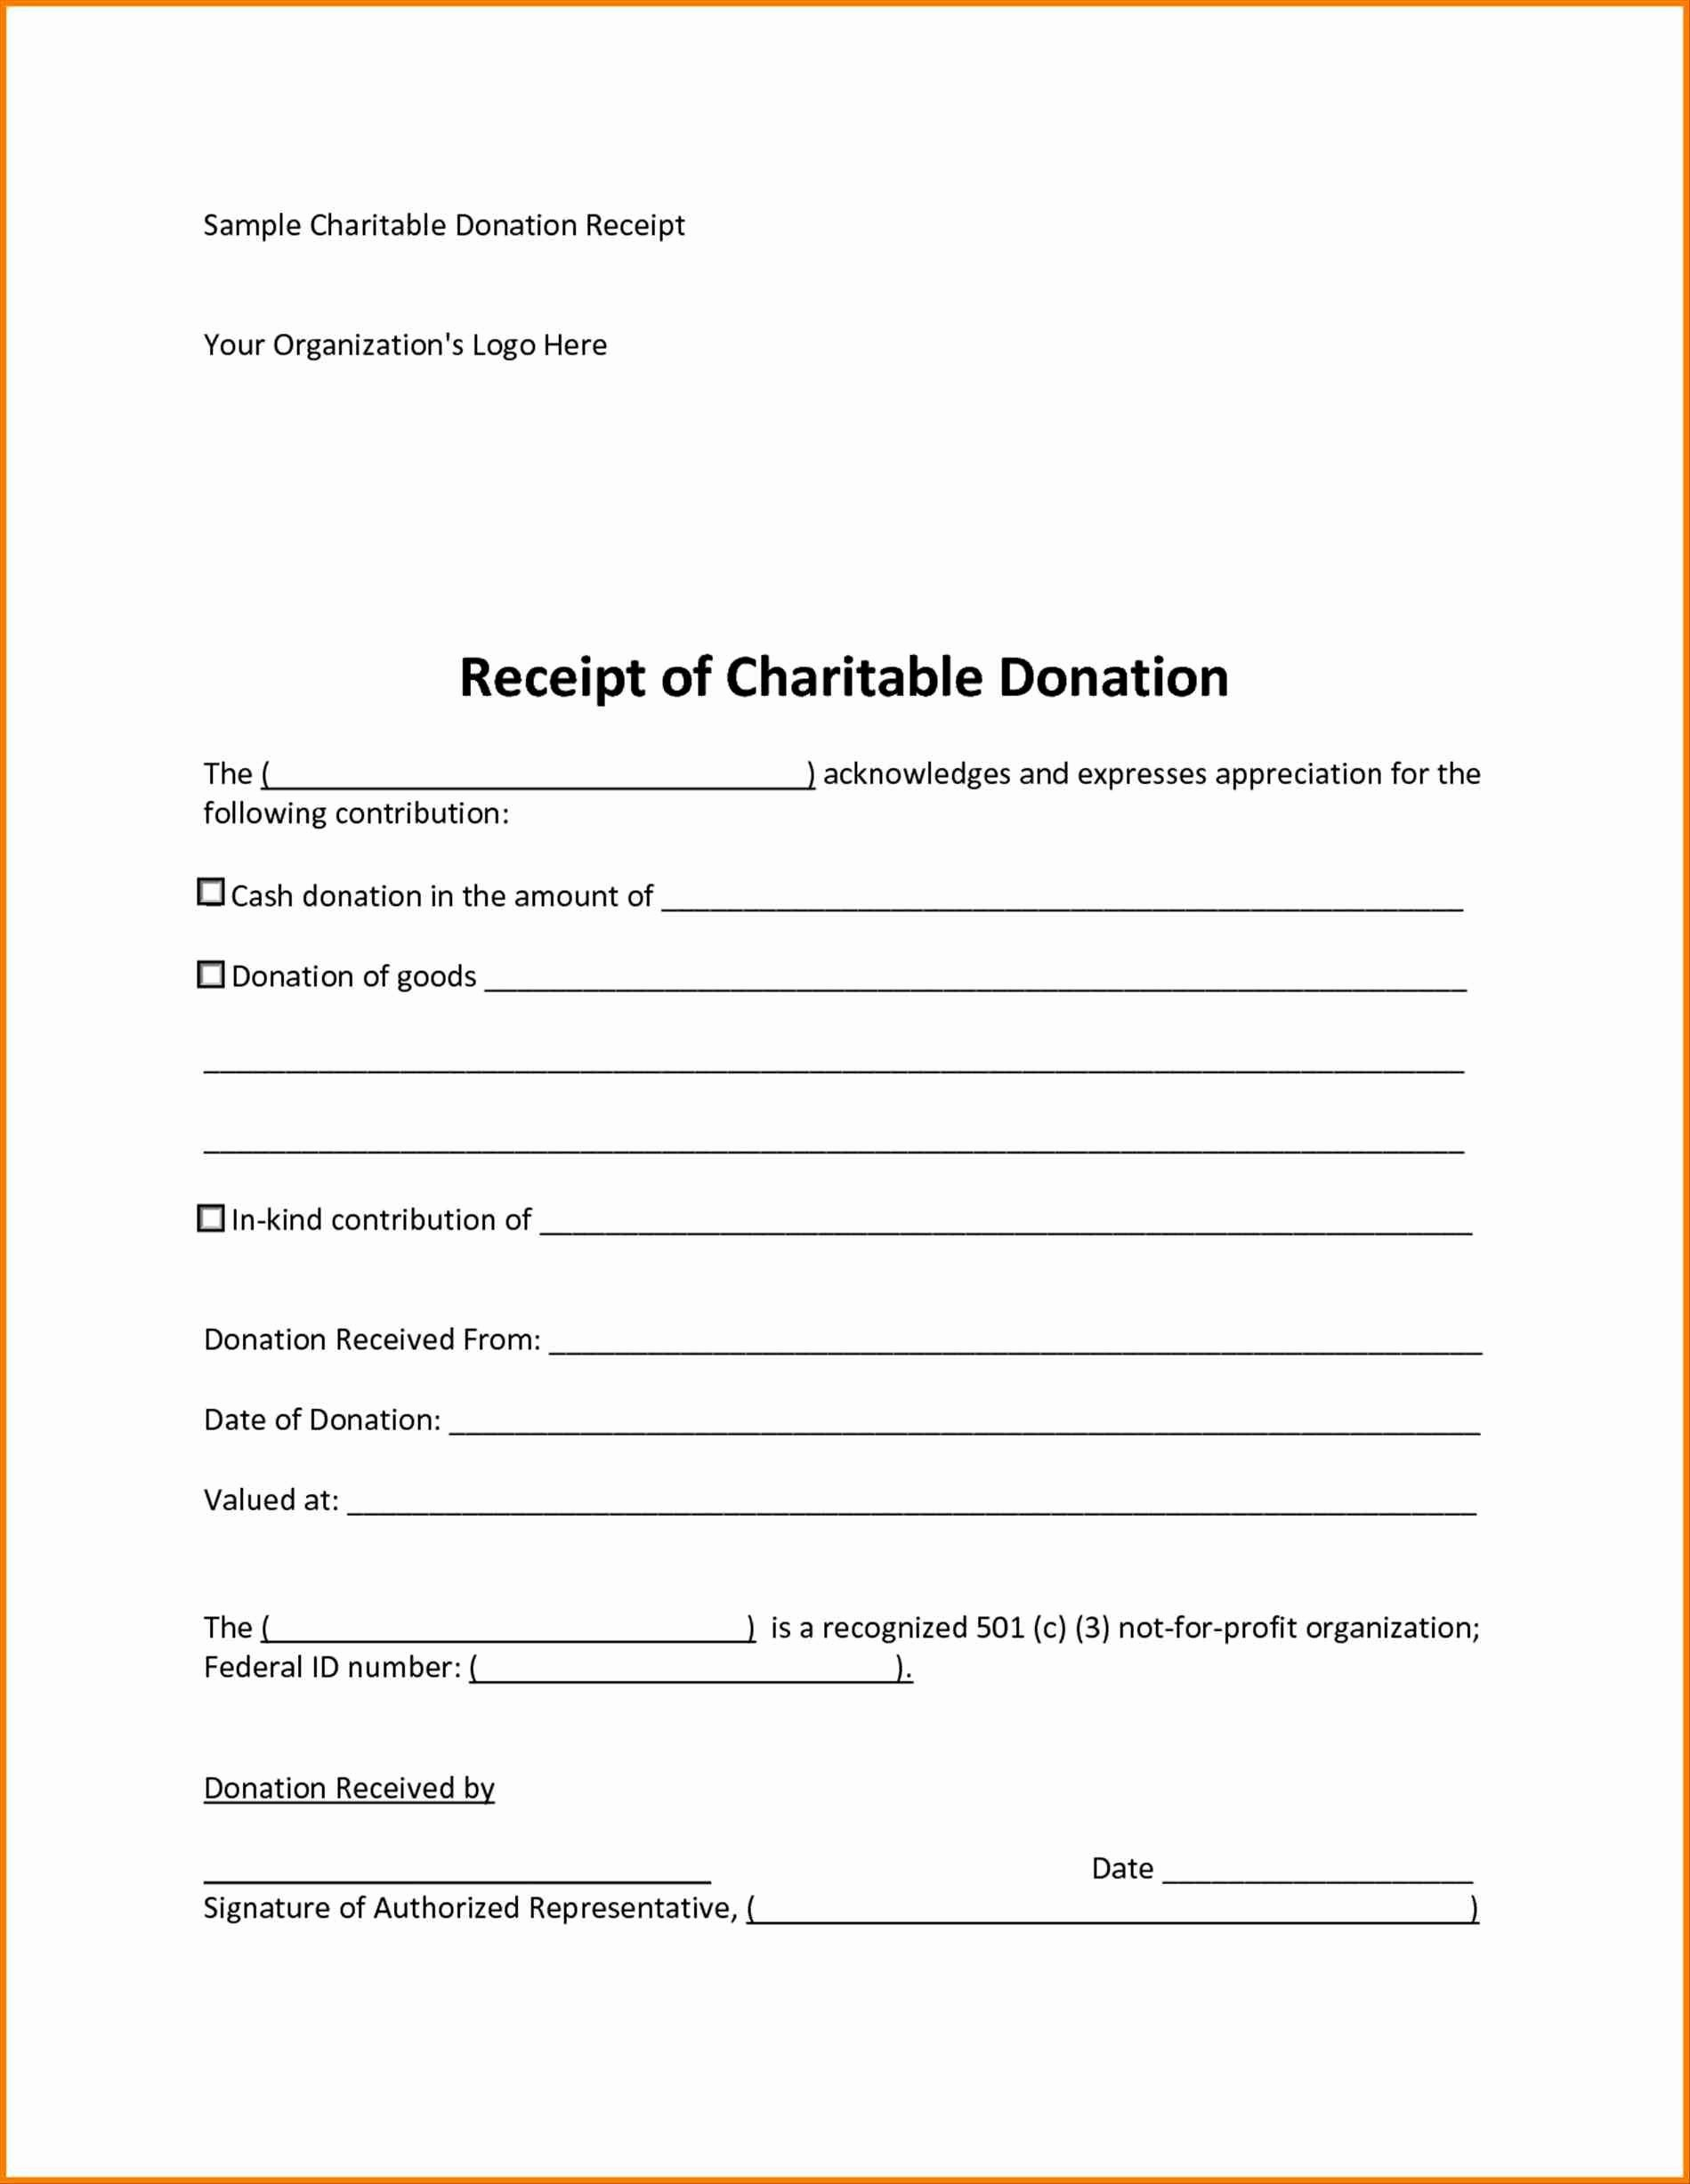 Example of Tax Receipt For Donation